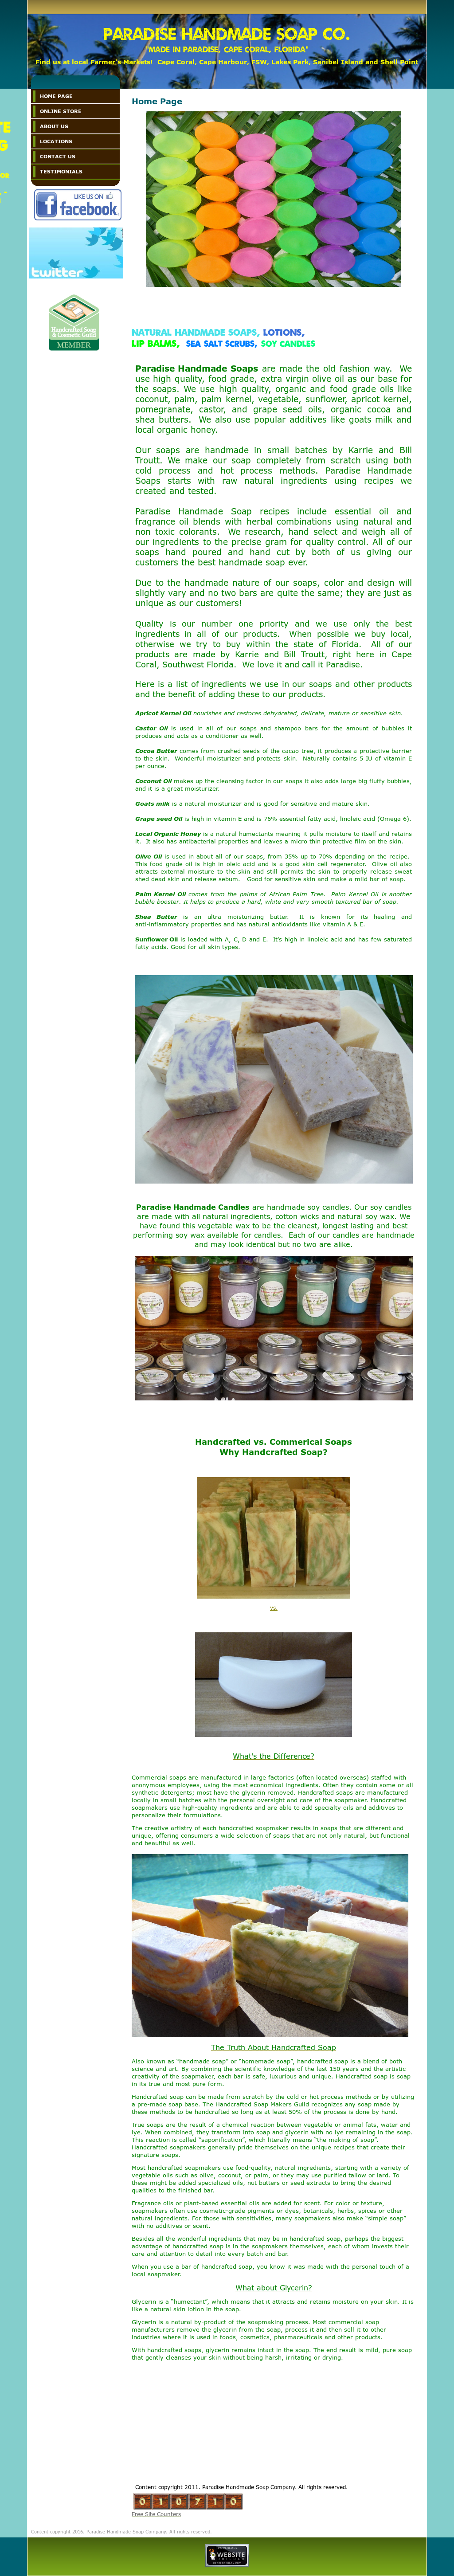 Paradise Handmade Soap Company Competitors, Revenue and